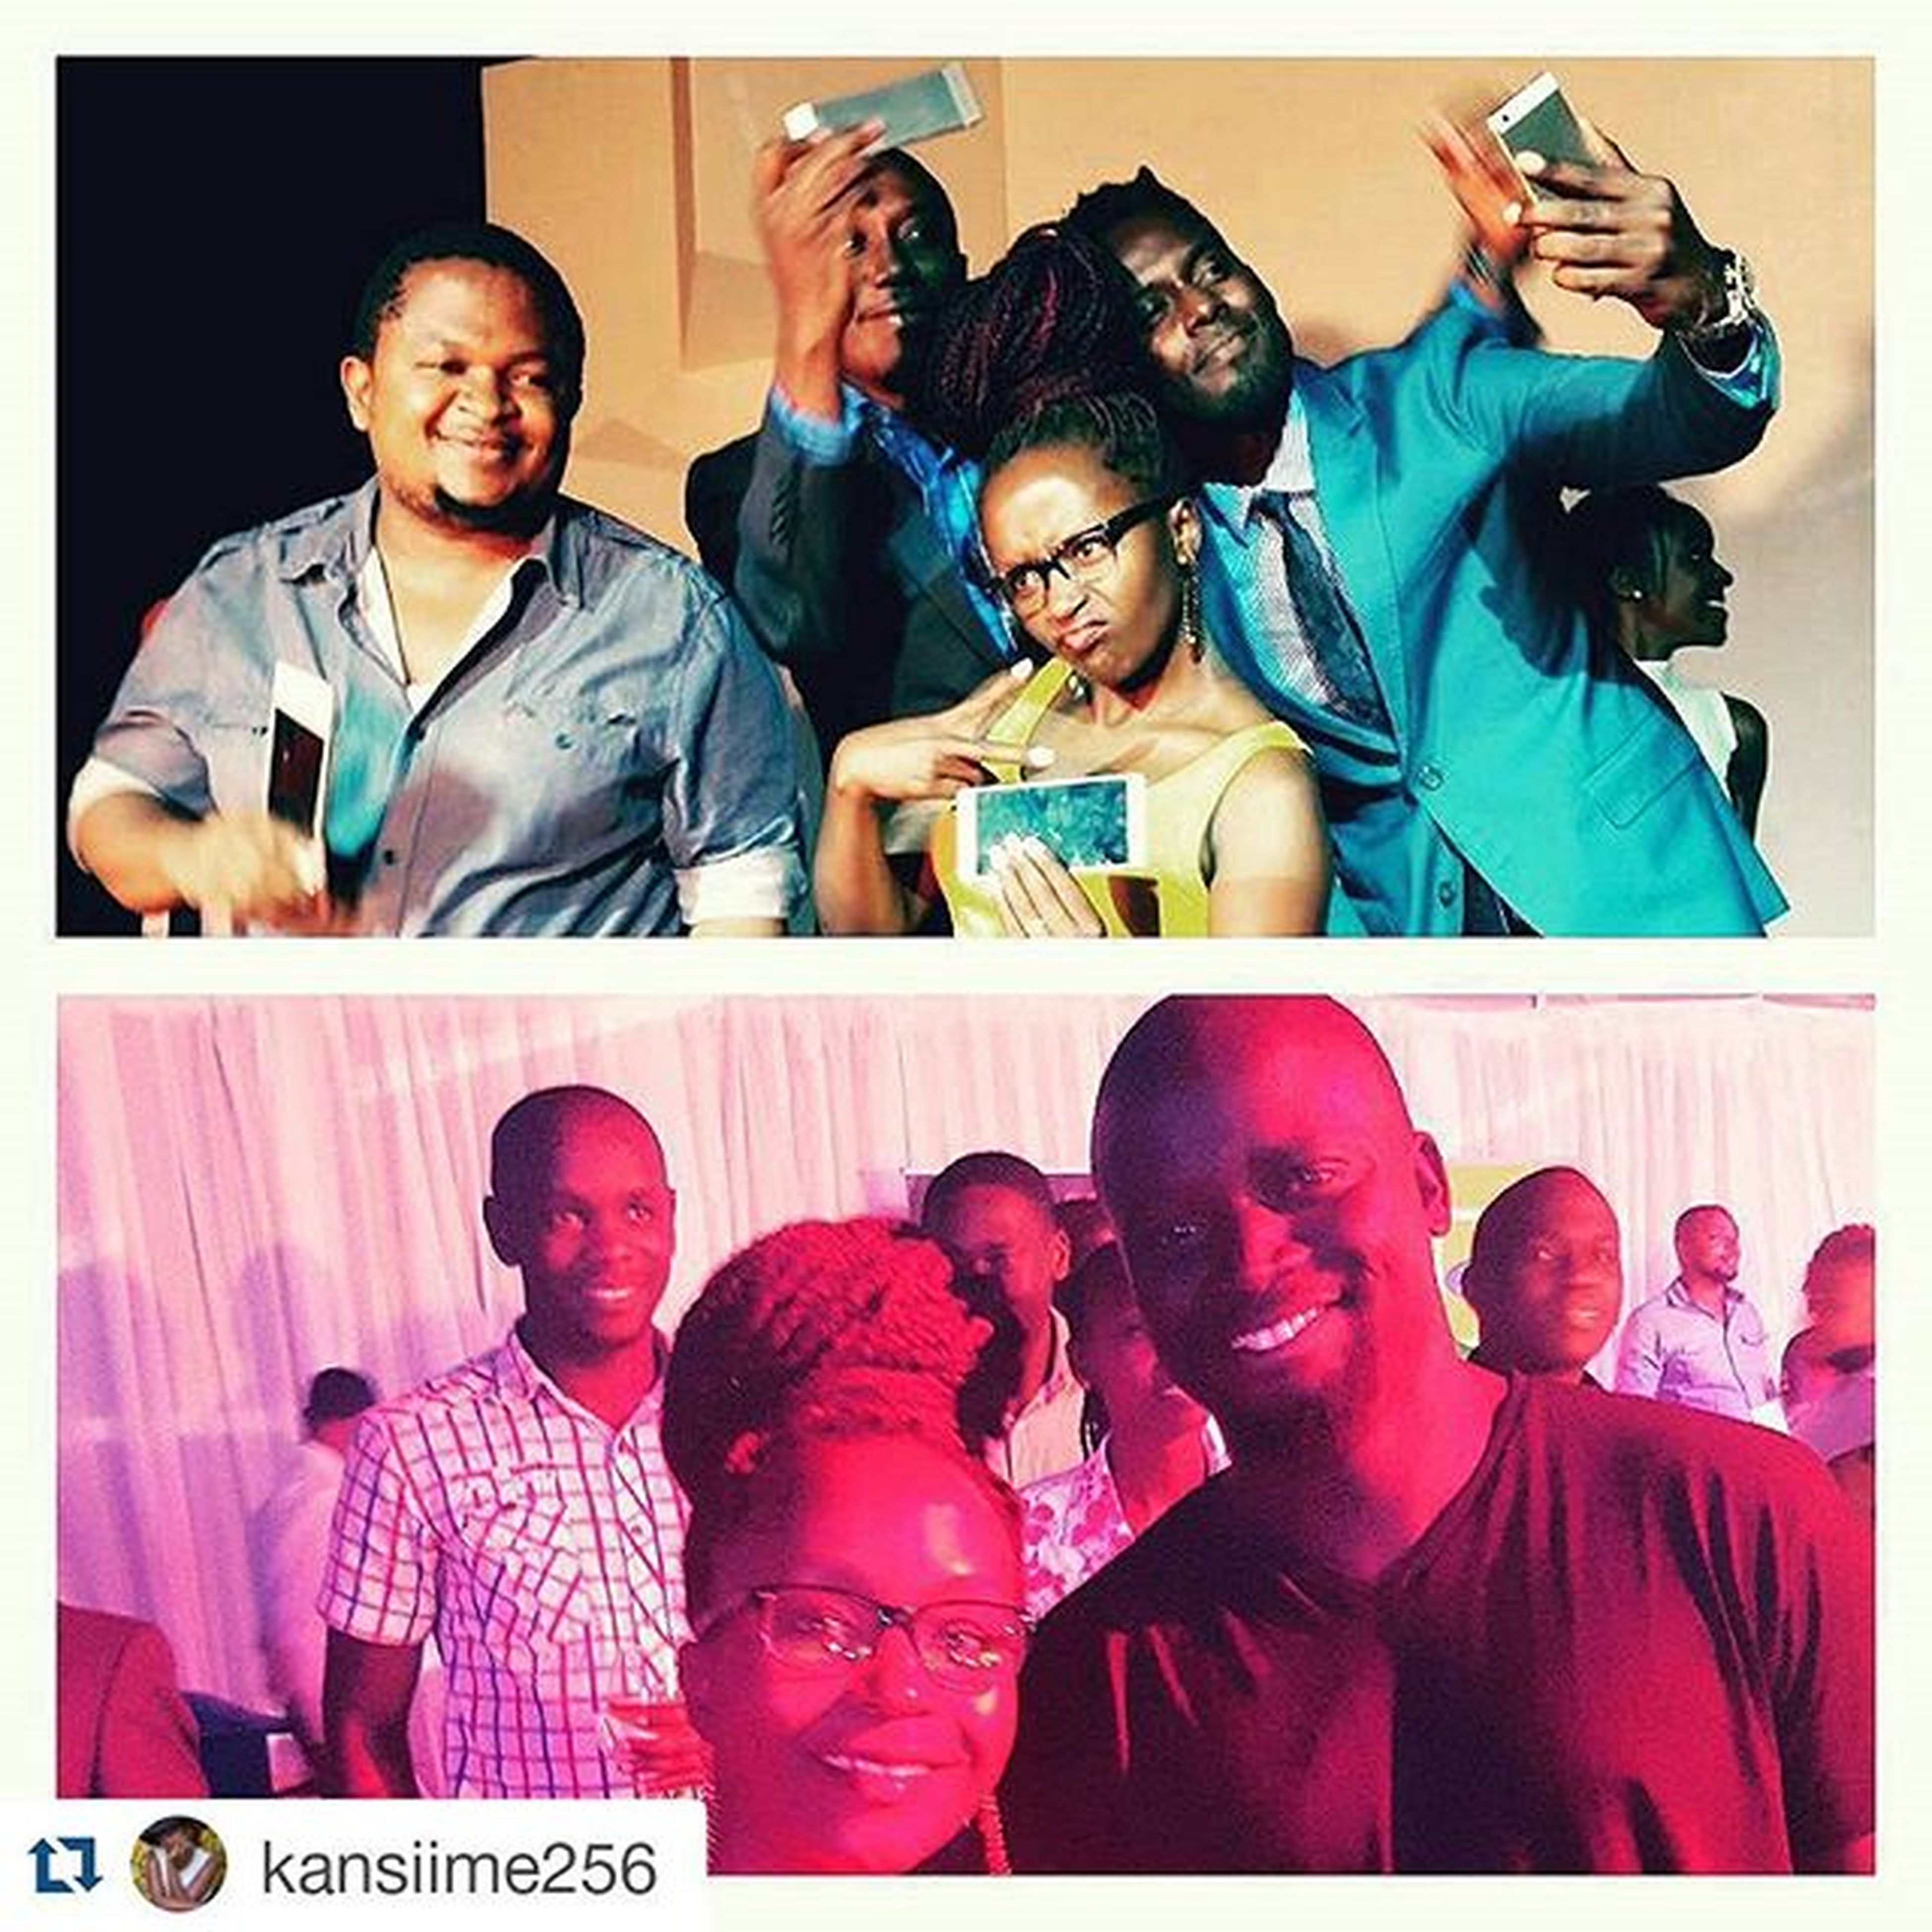 Repost @kansiime256 ・・・ At the HuaweiP8 launch. Proudly associated. GotAFreeOne . Sharedblessings IAmAReason